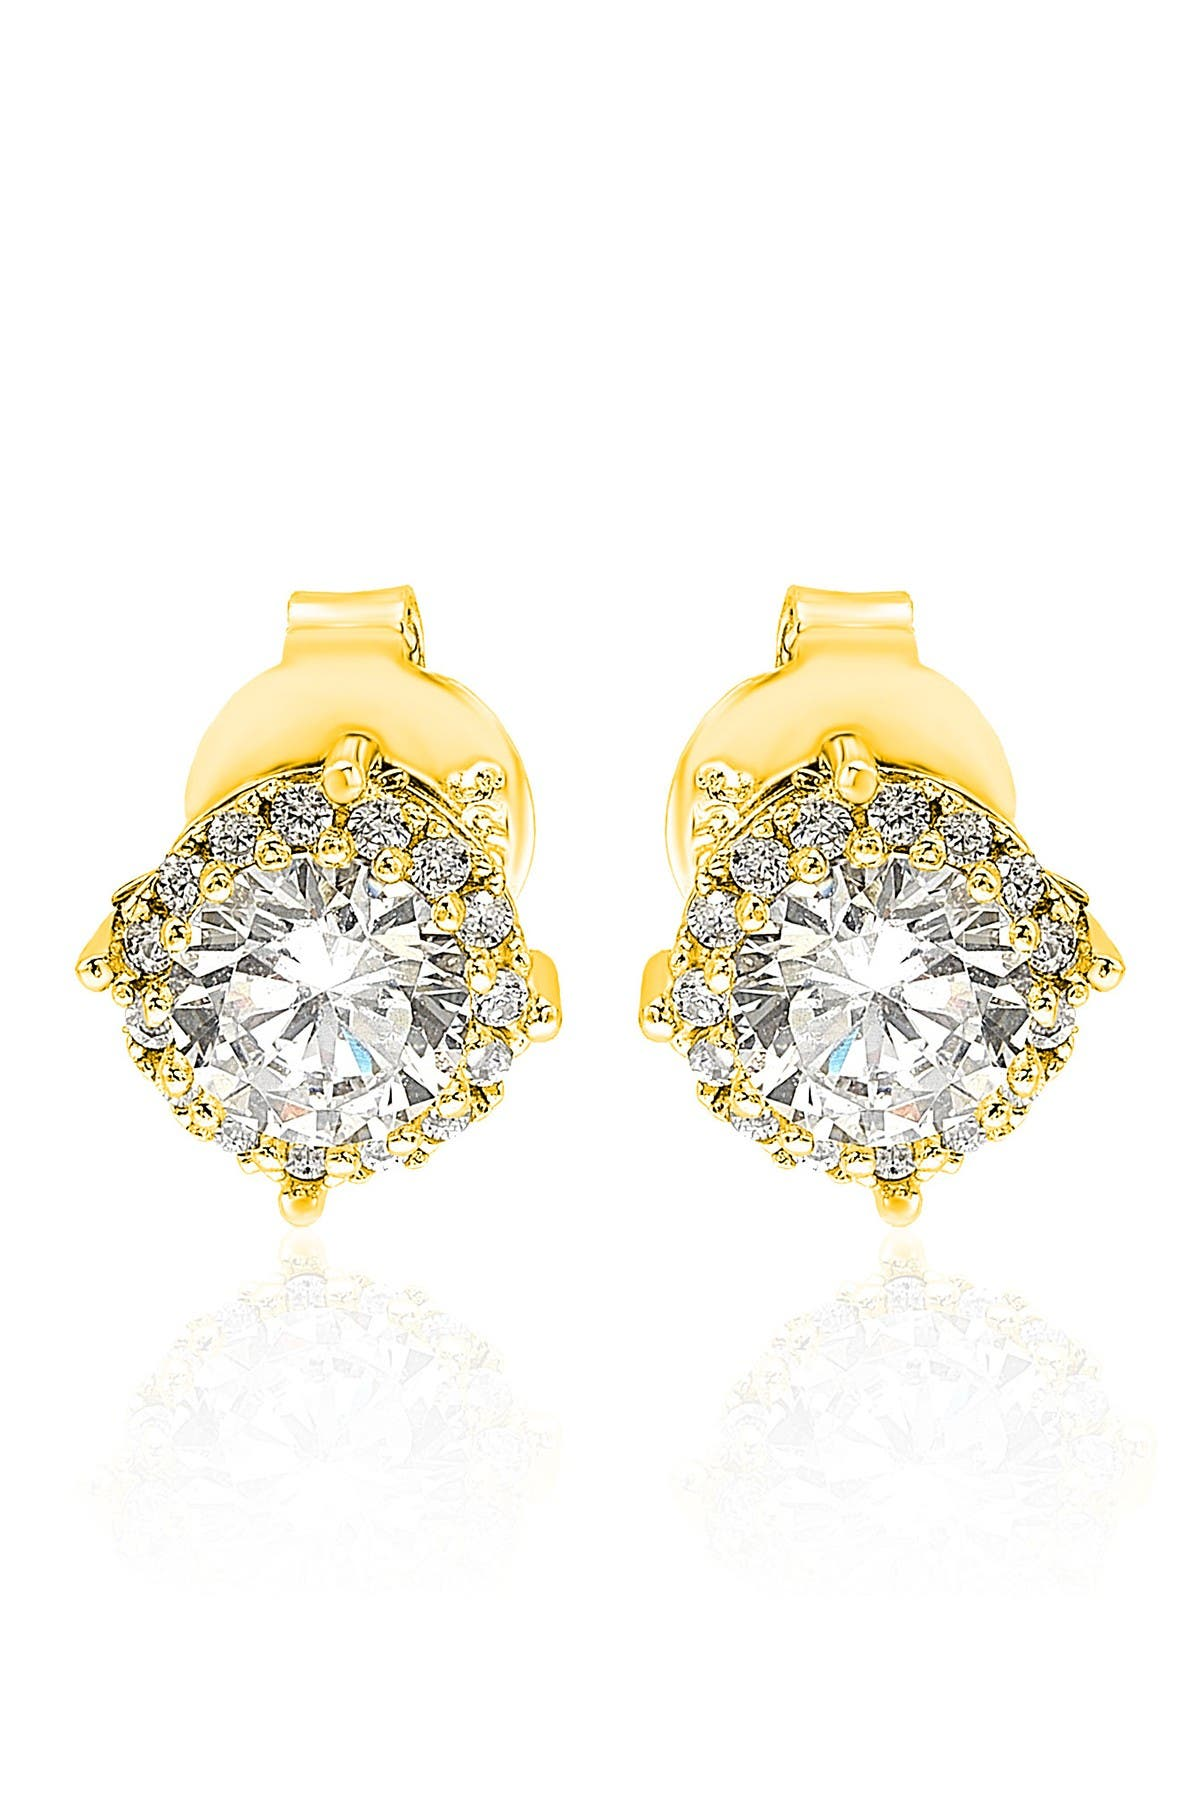 Image of Suzy Levian Gold Sterling Silver CZ Stud Earrings